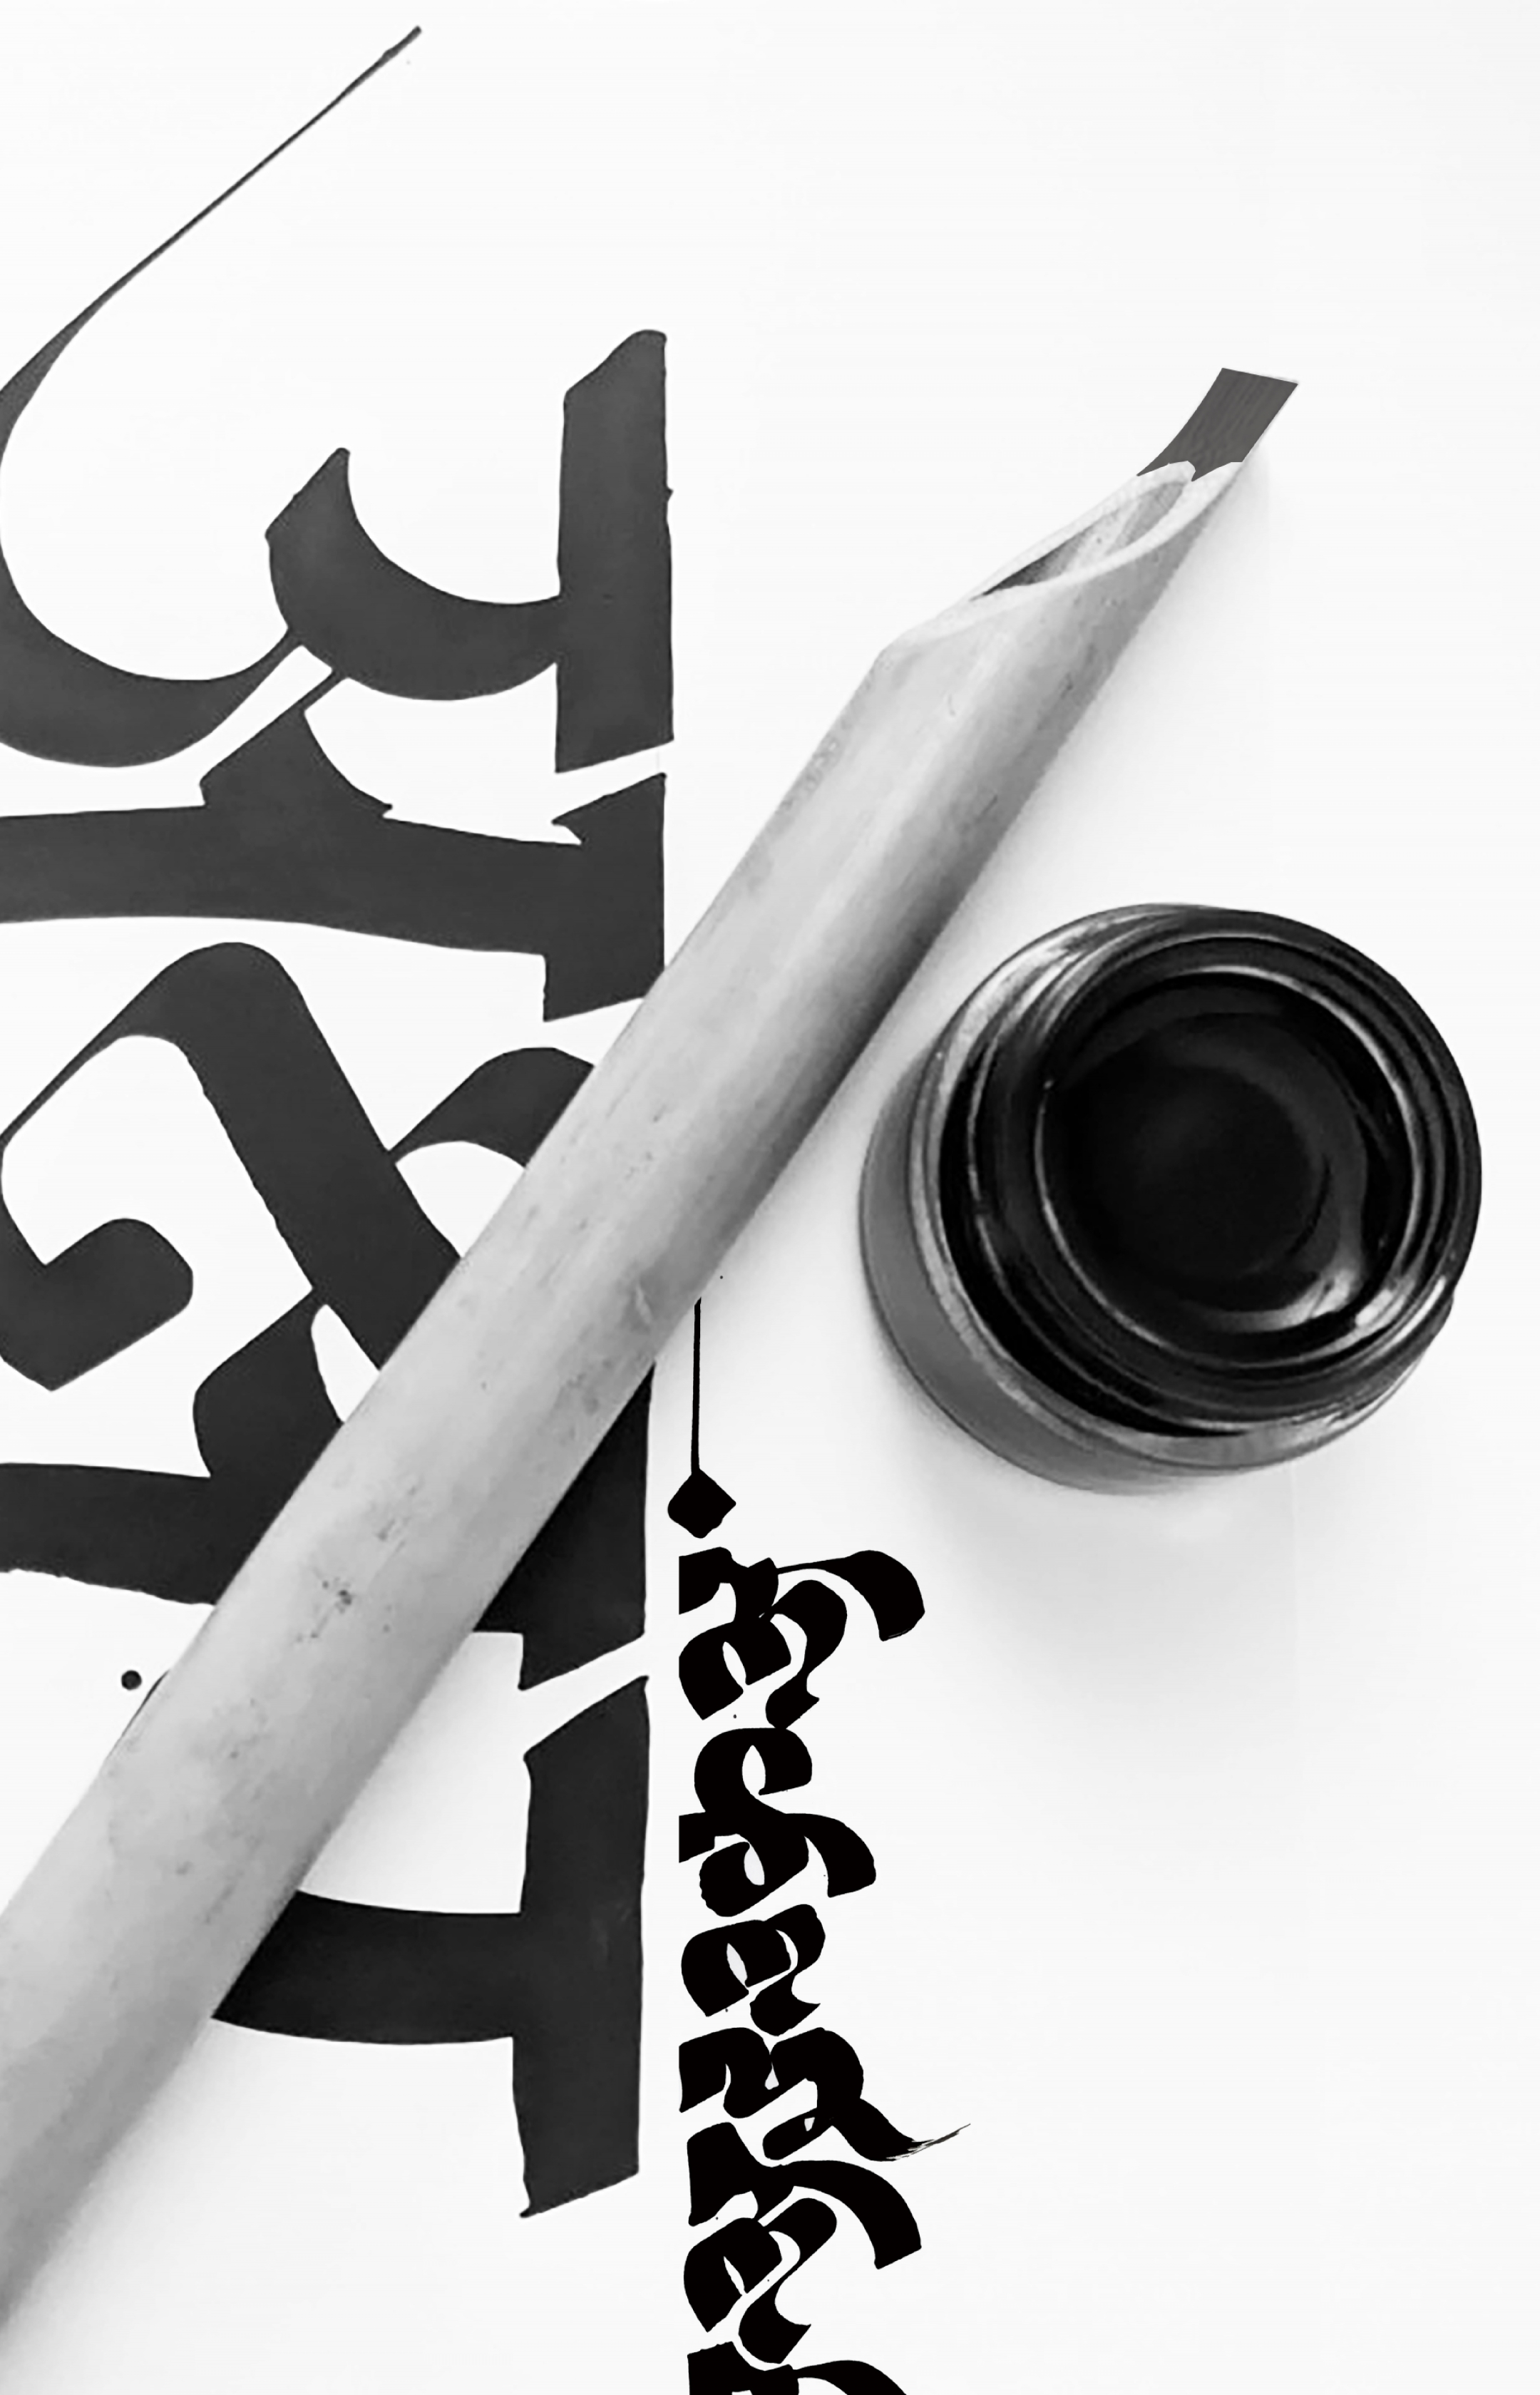 Series of Calligraphic Event Poster